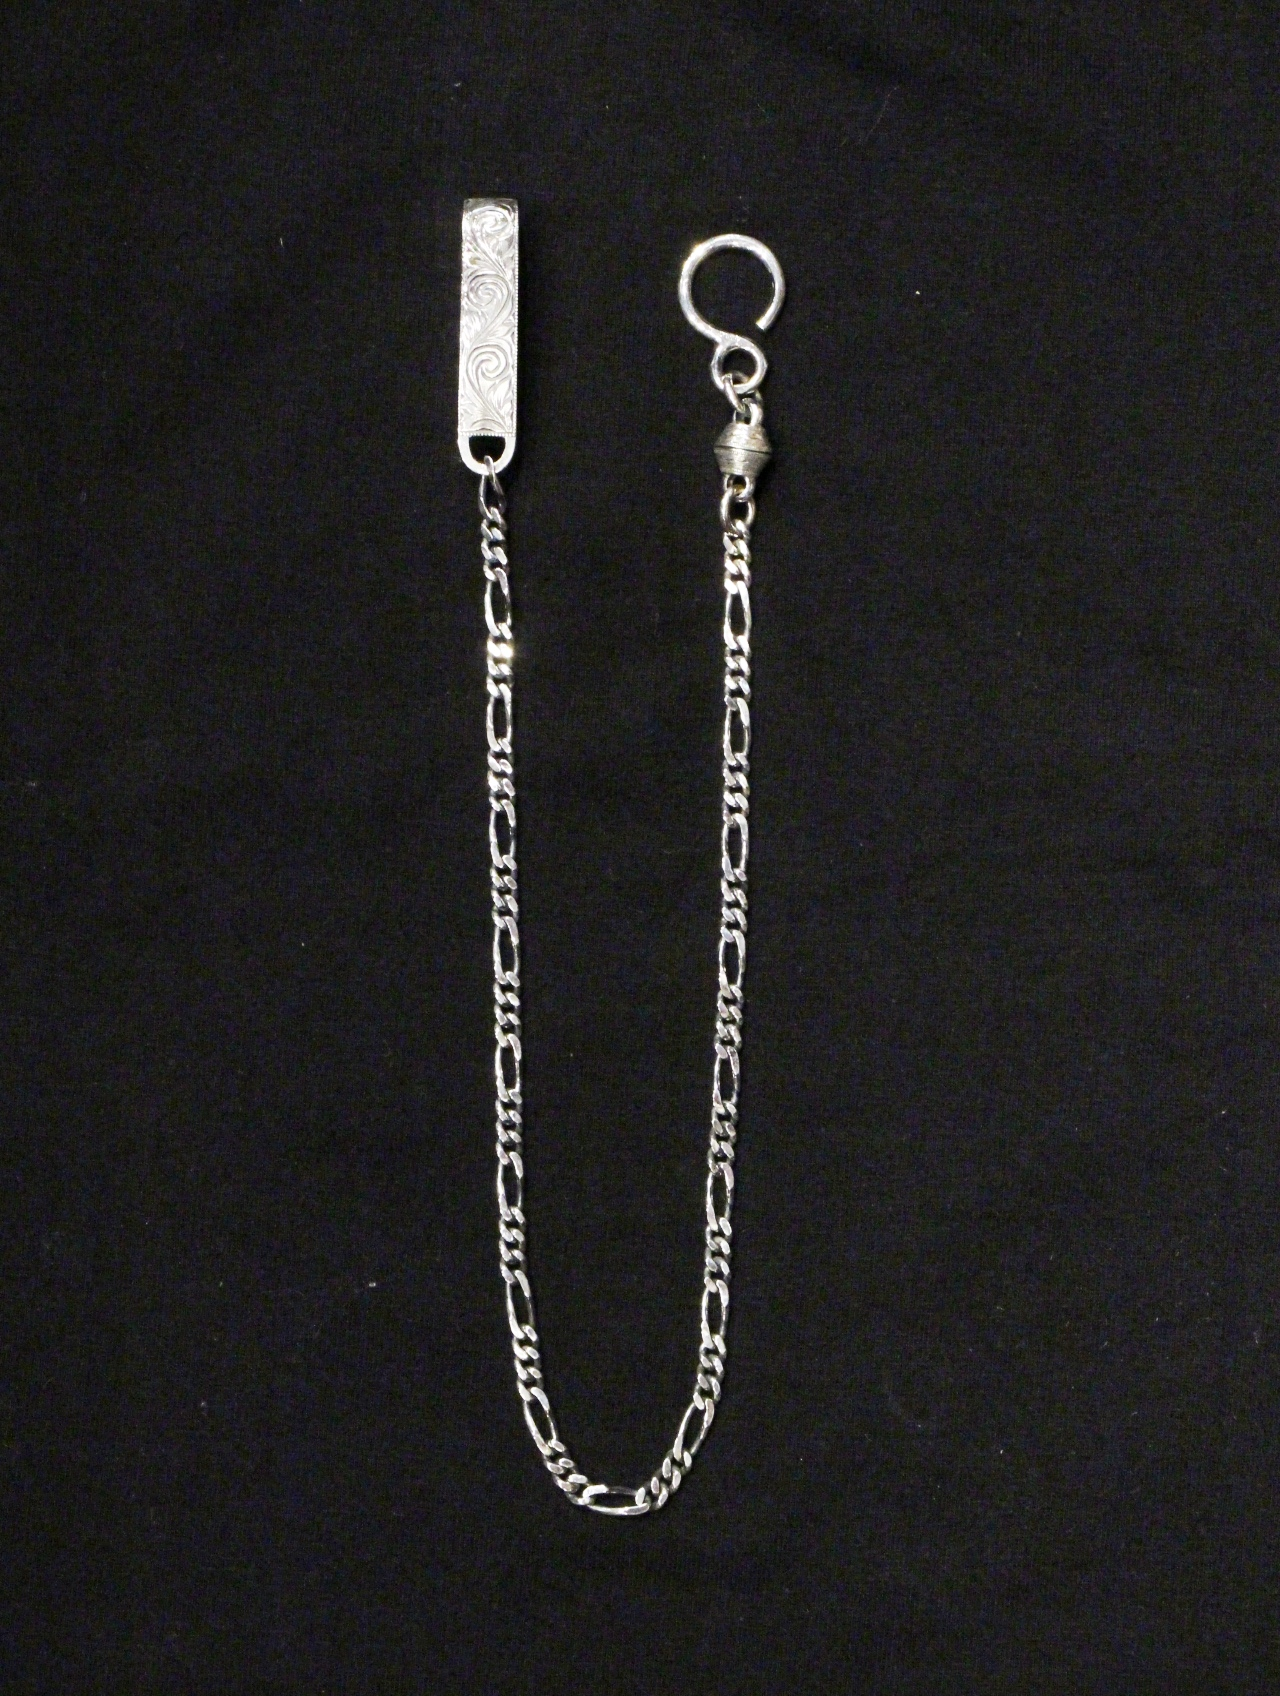 ANTIDOTE BUYERS CLUB by Cootie Productions  「Engraved Narrow Wallet Chain (Short)」 SILVER950製 ウォレットチェーン